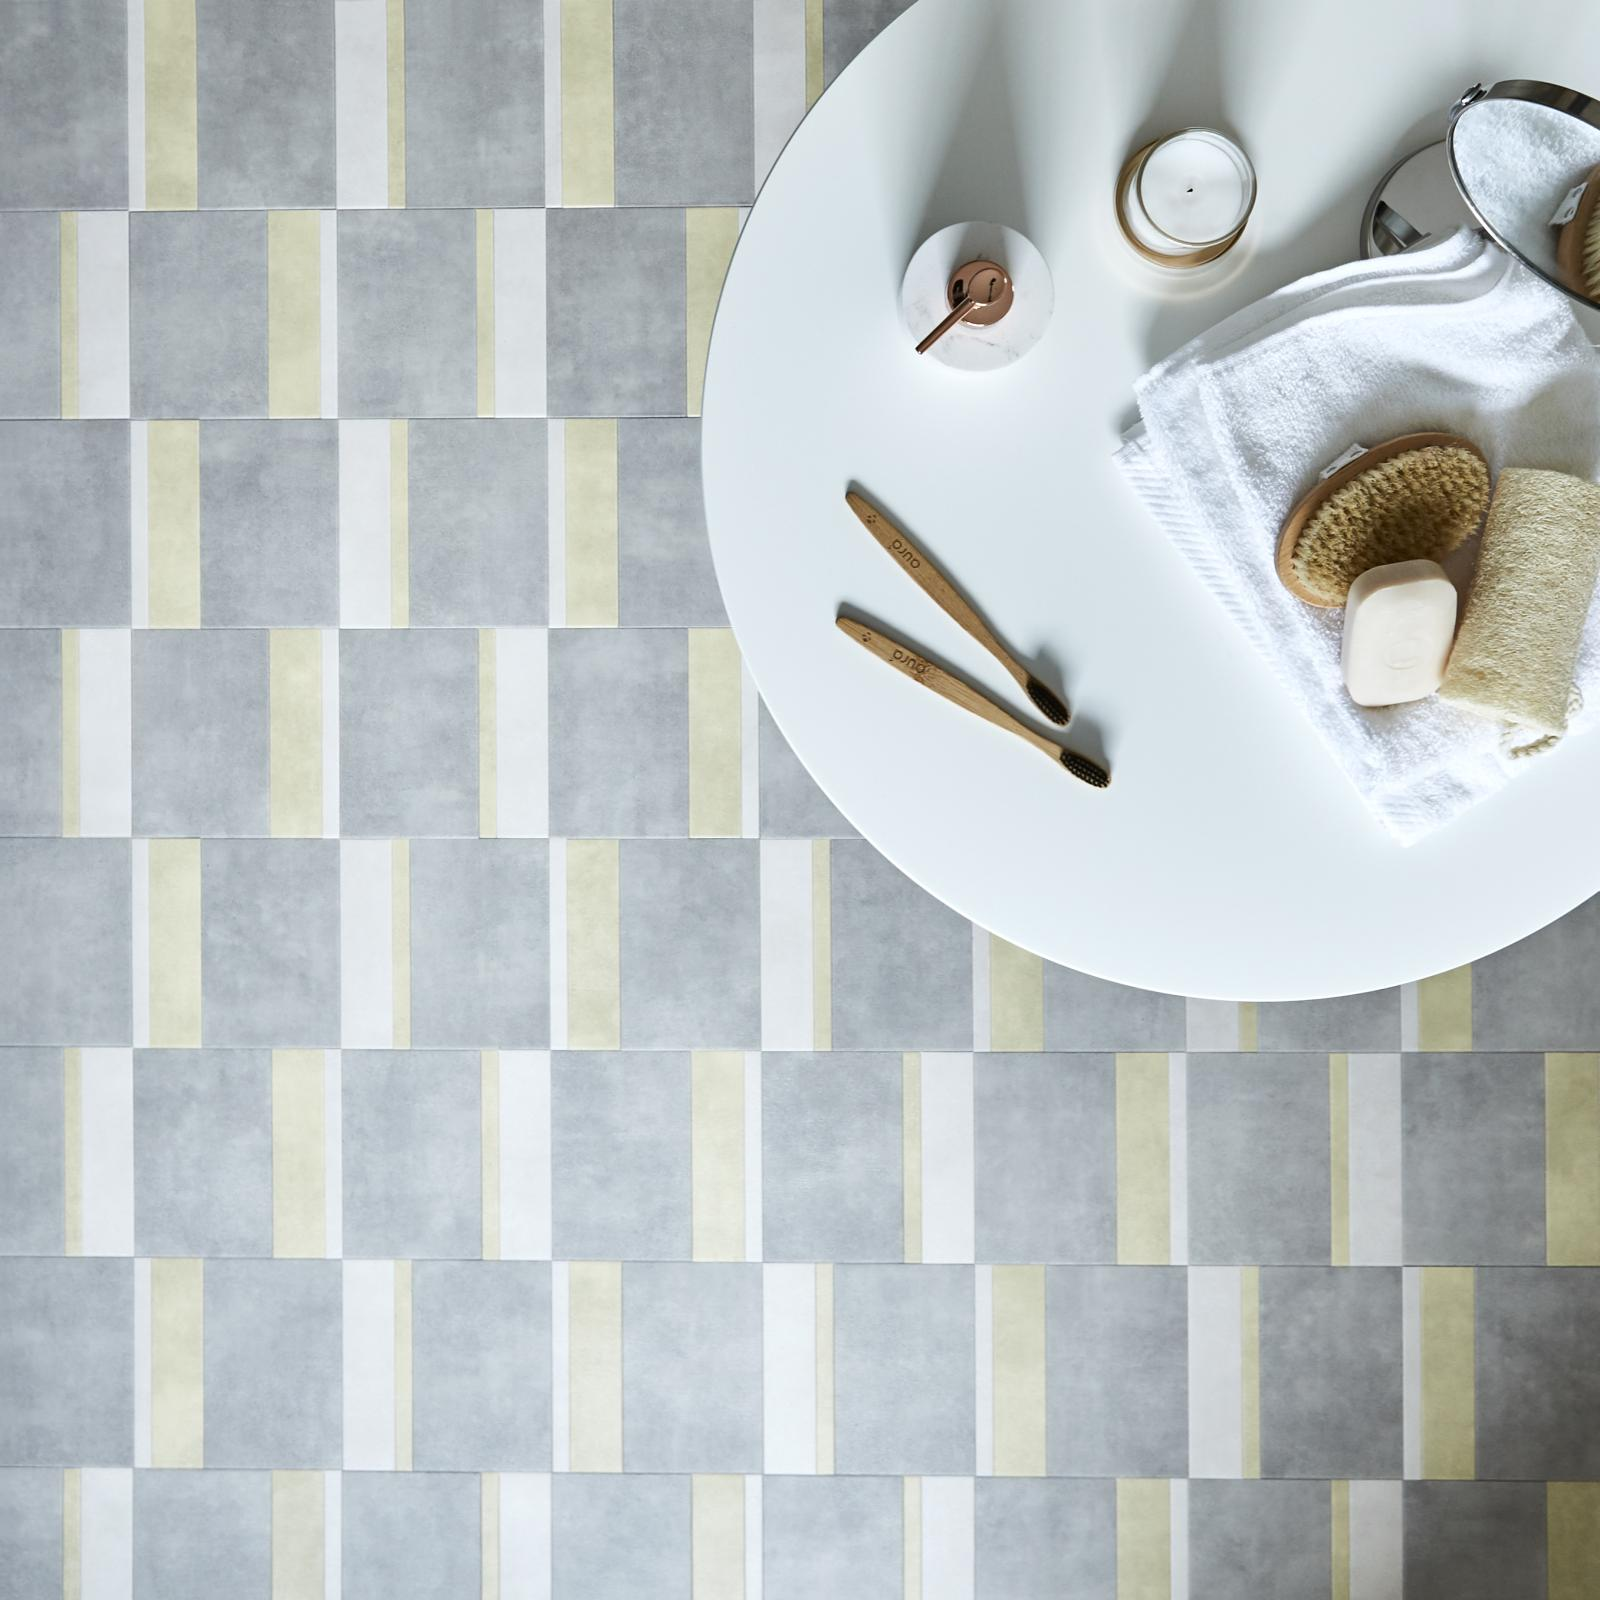 Smtico flooring in Pantone colours of the year 2021